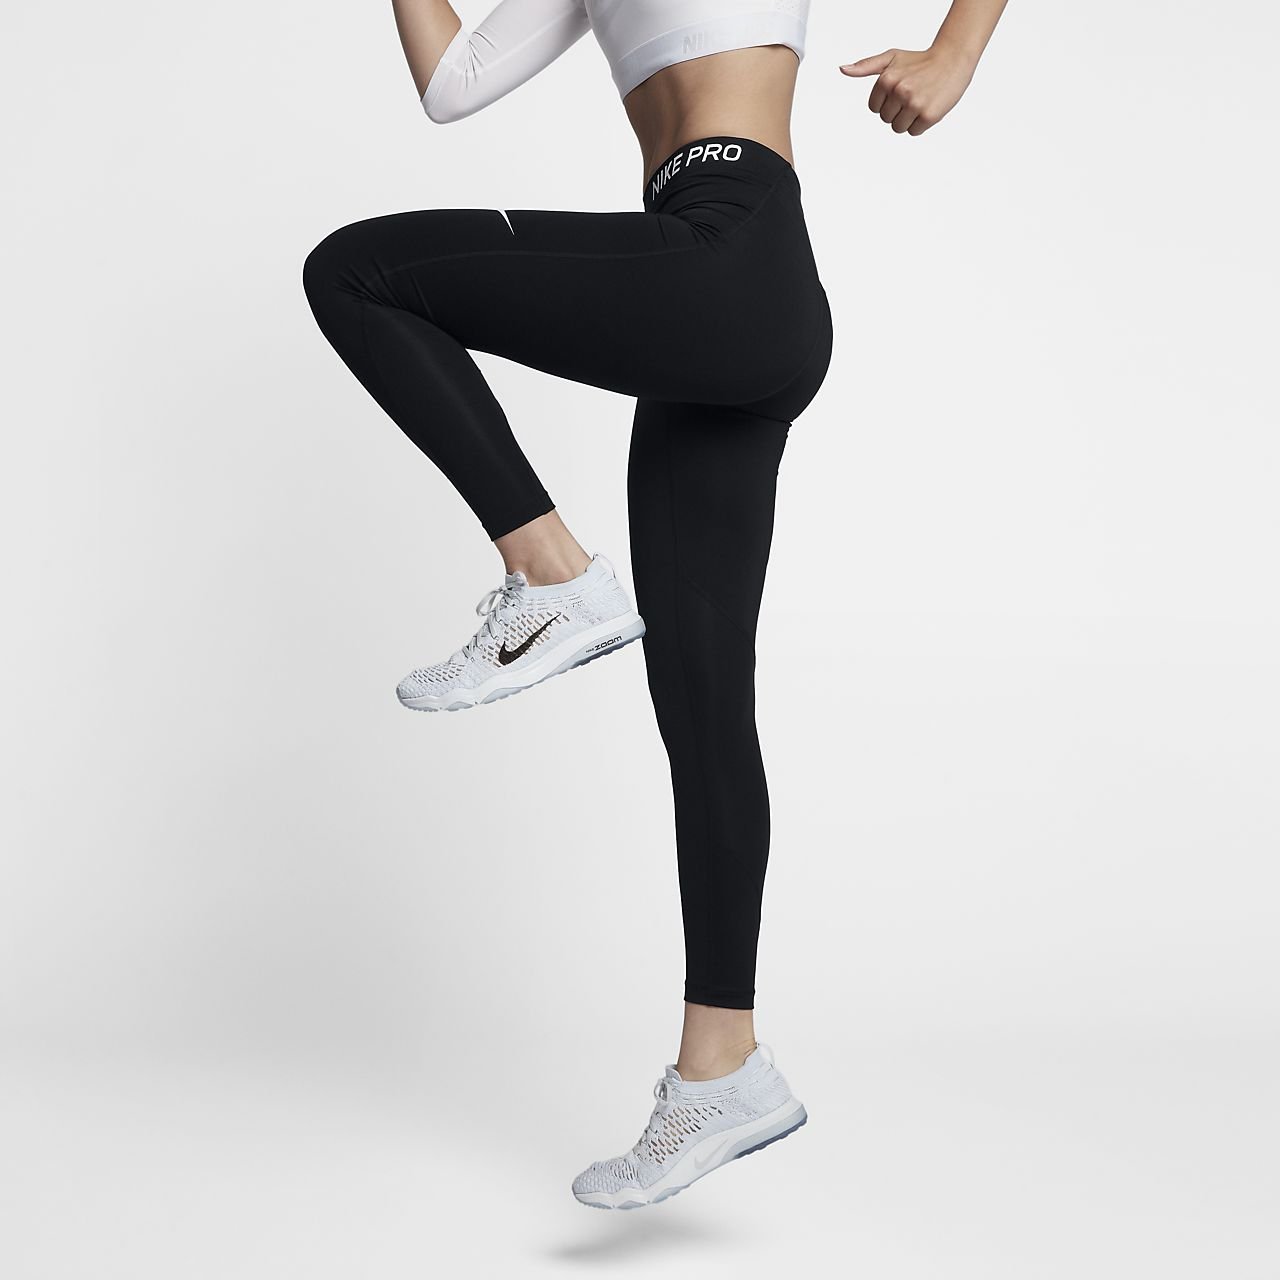 65adc45dae4d7 Nike Pro Women's Mid-Rise Training Tights. Nike.com